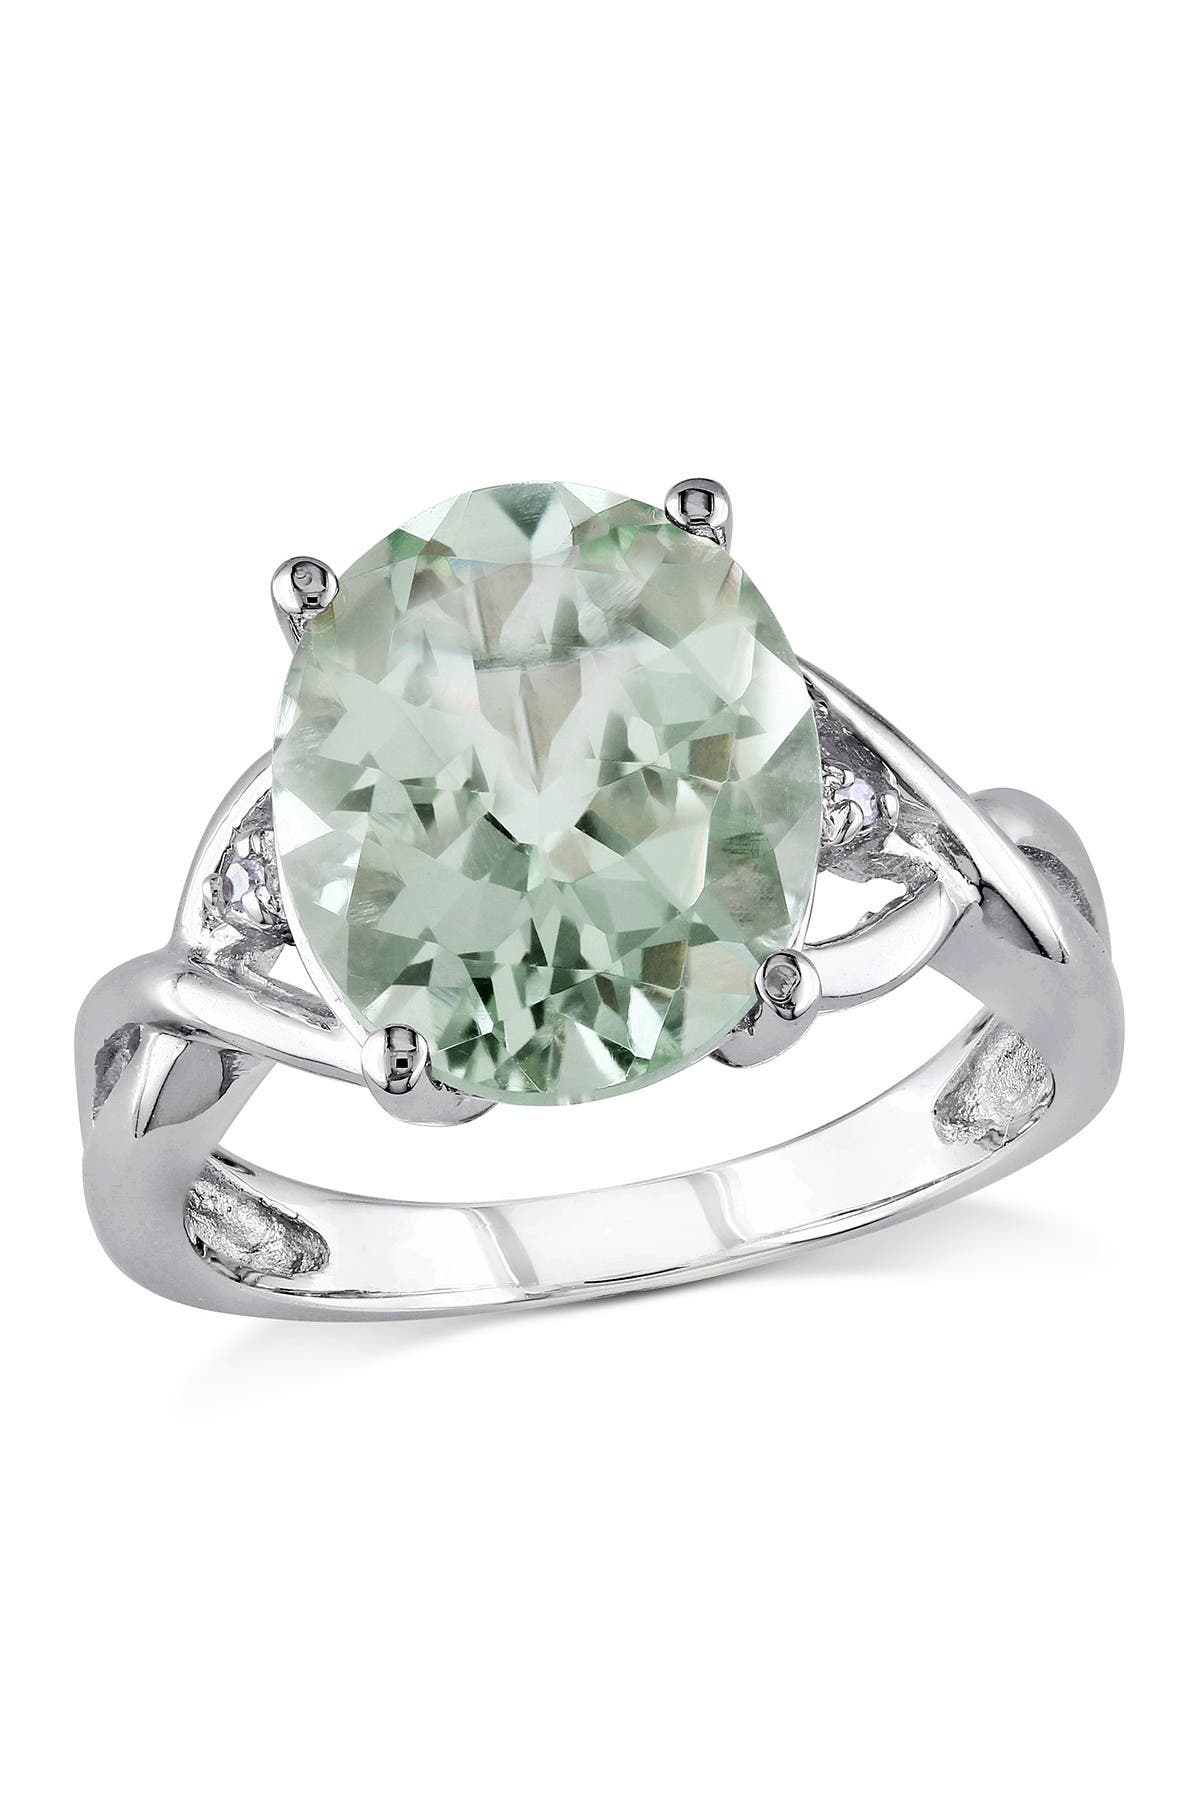 Image of Delmar Sterling Silver Oval Green Amethyst & Diamond Accent Ring